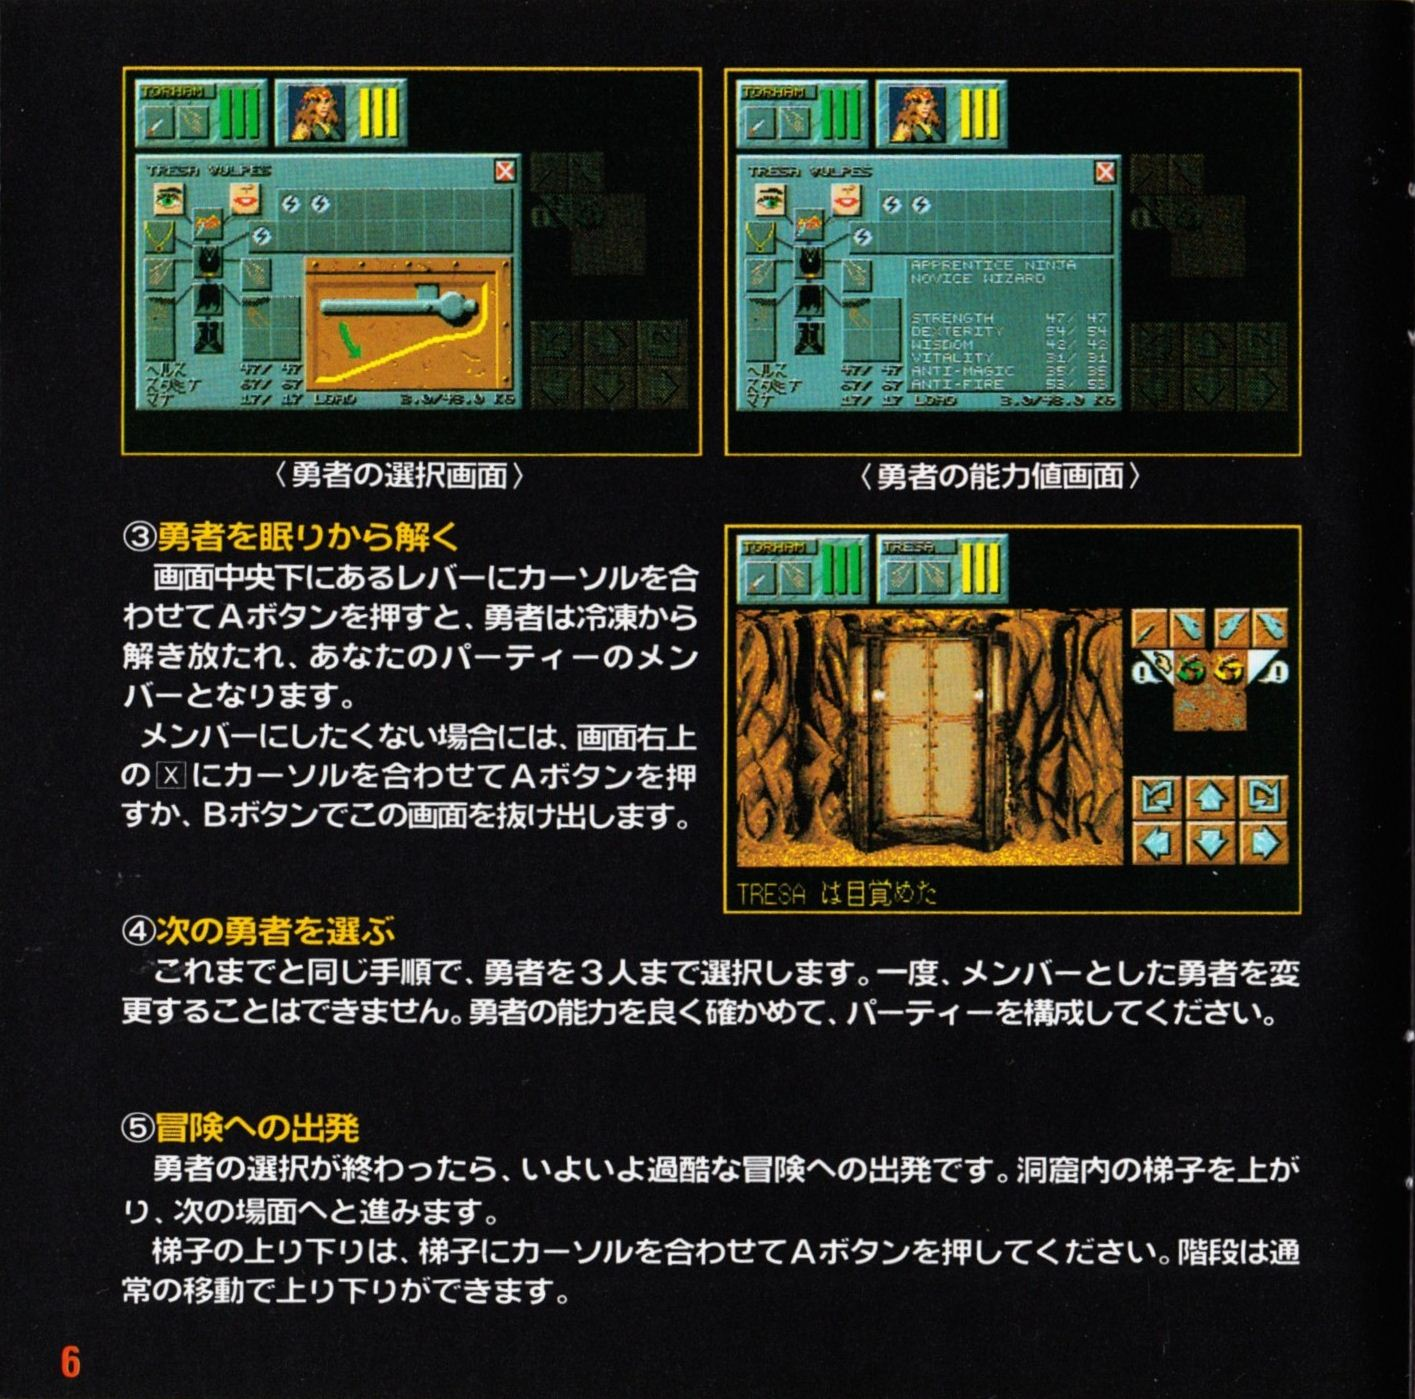 Game - Dungeon Master II - JP - Mega CD - Booklet - Page 008 - Scan